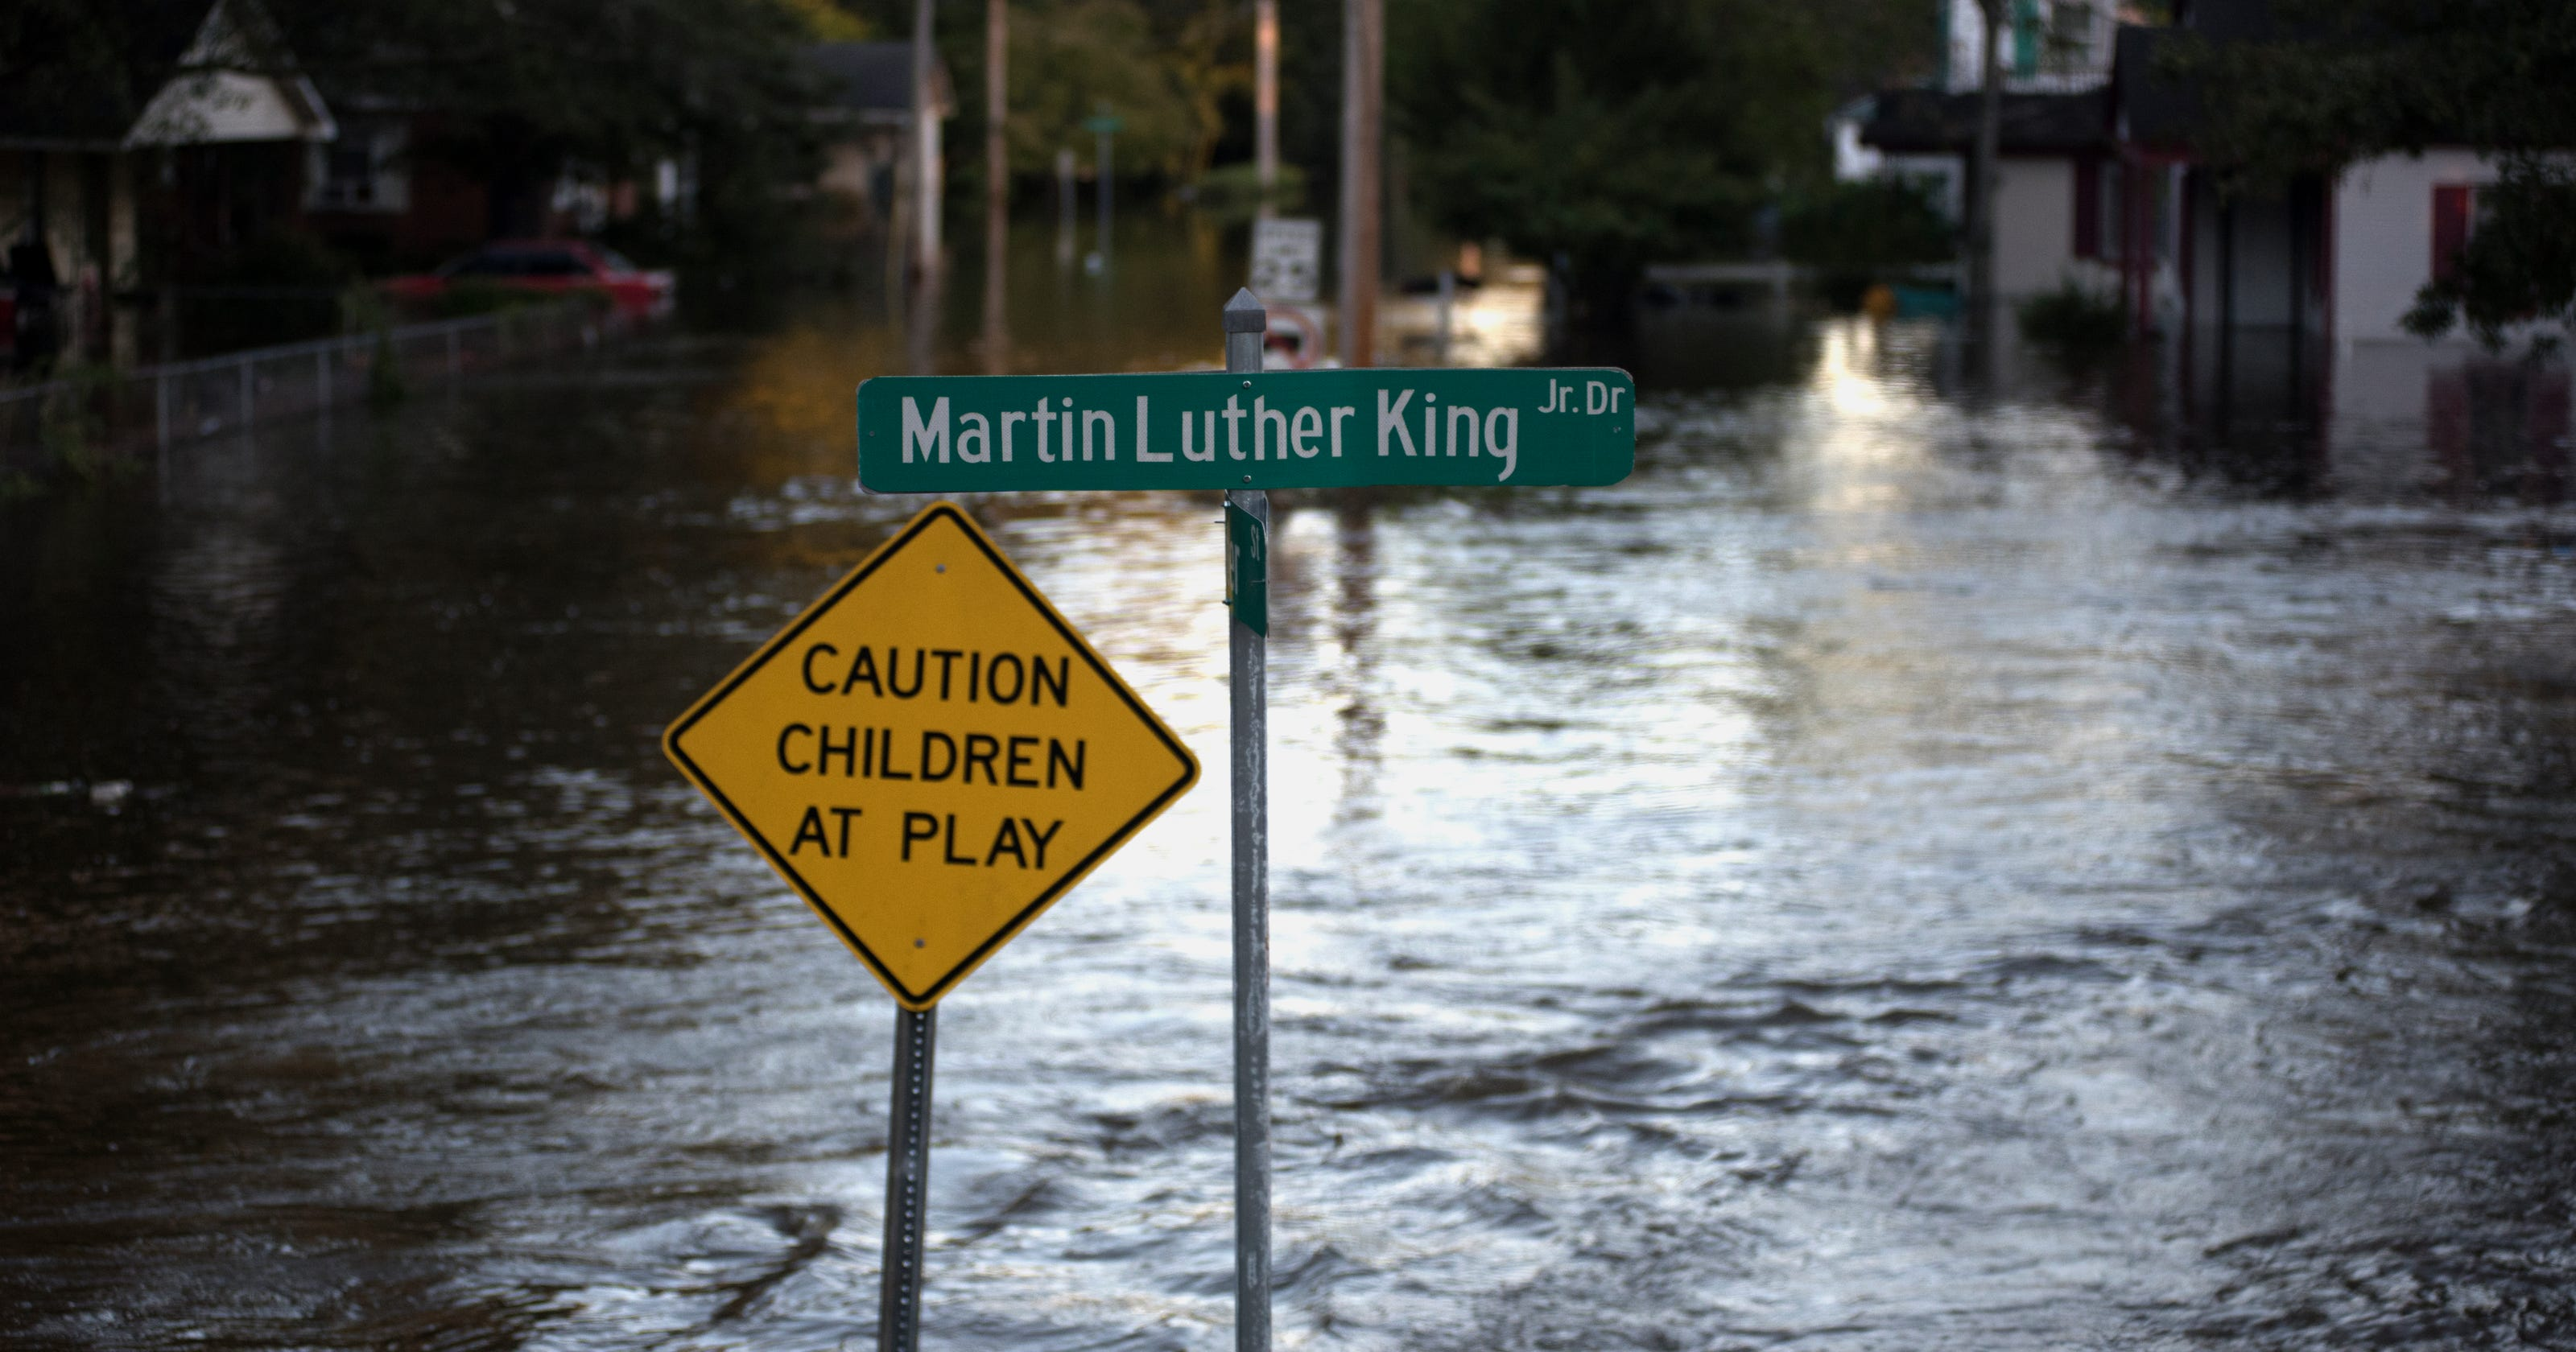 Flooded N C  city: 'Please pray for our community'